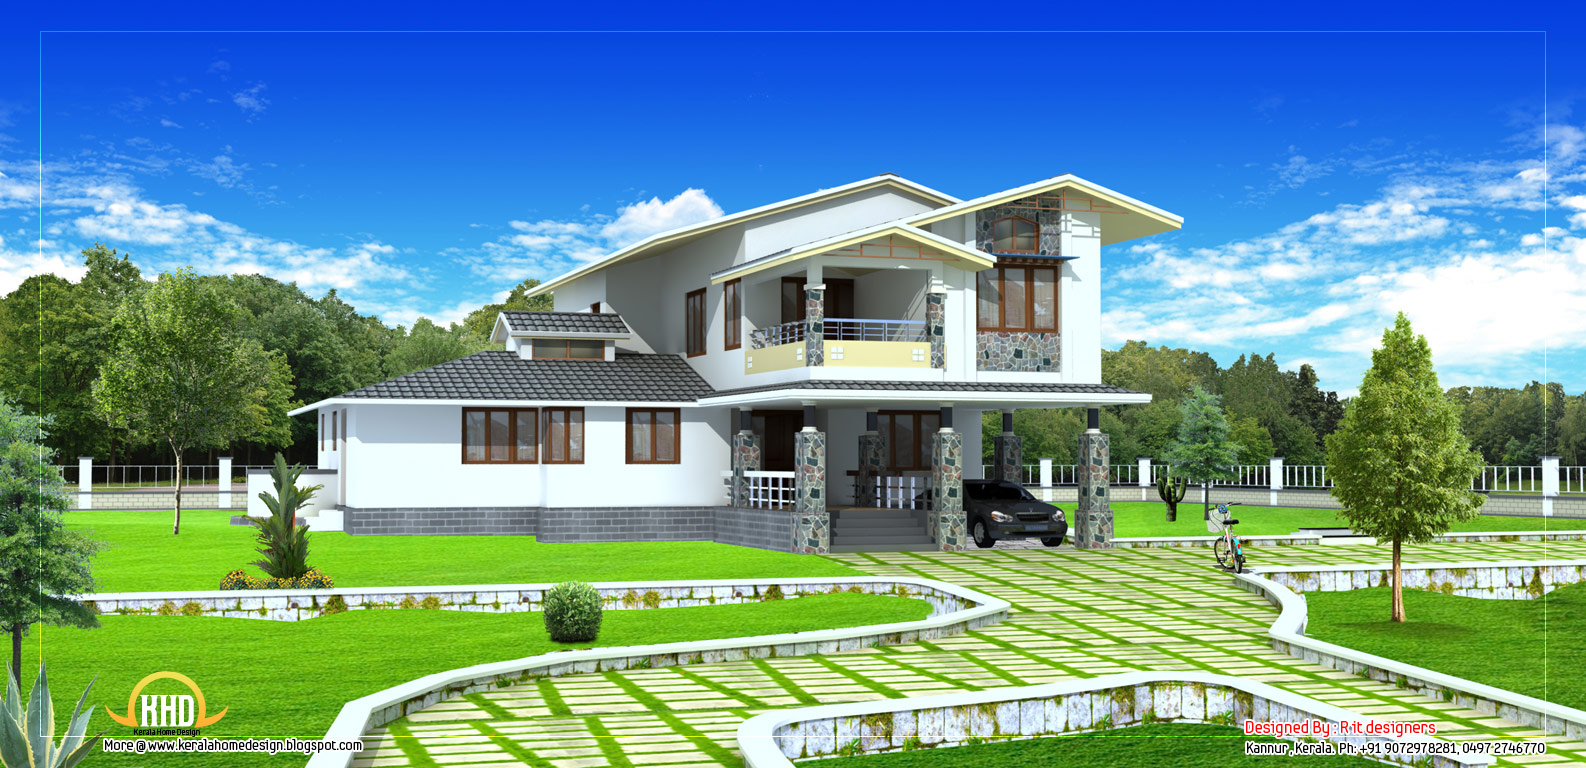 2 story house plan 2490 sq ft kerala home design and for New two story homes